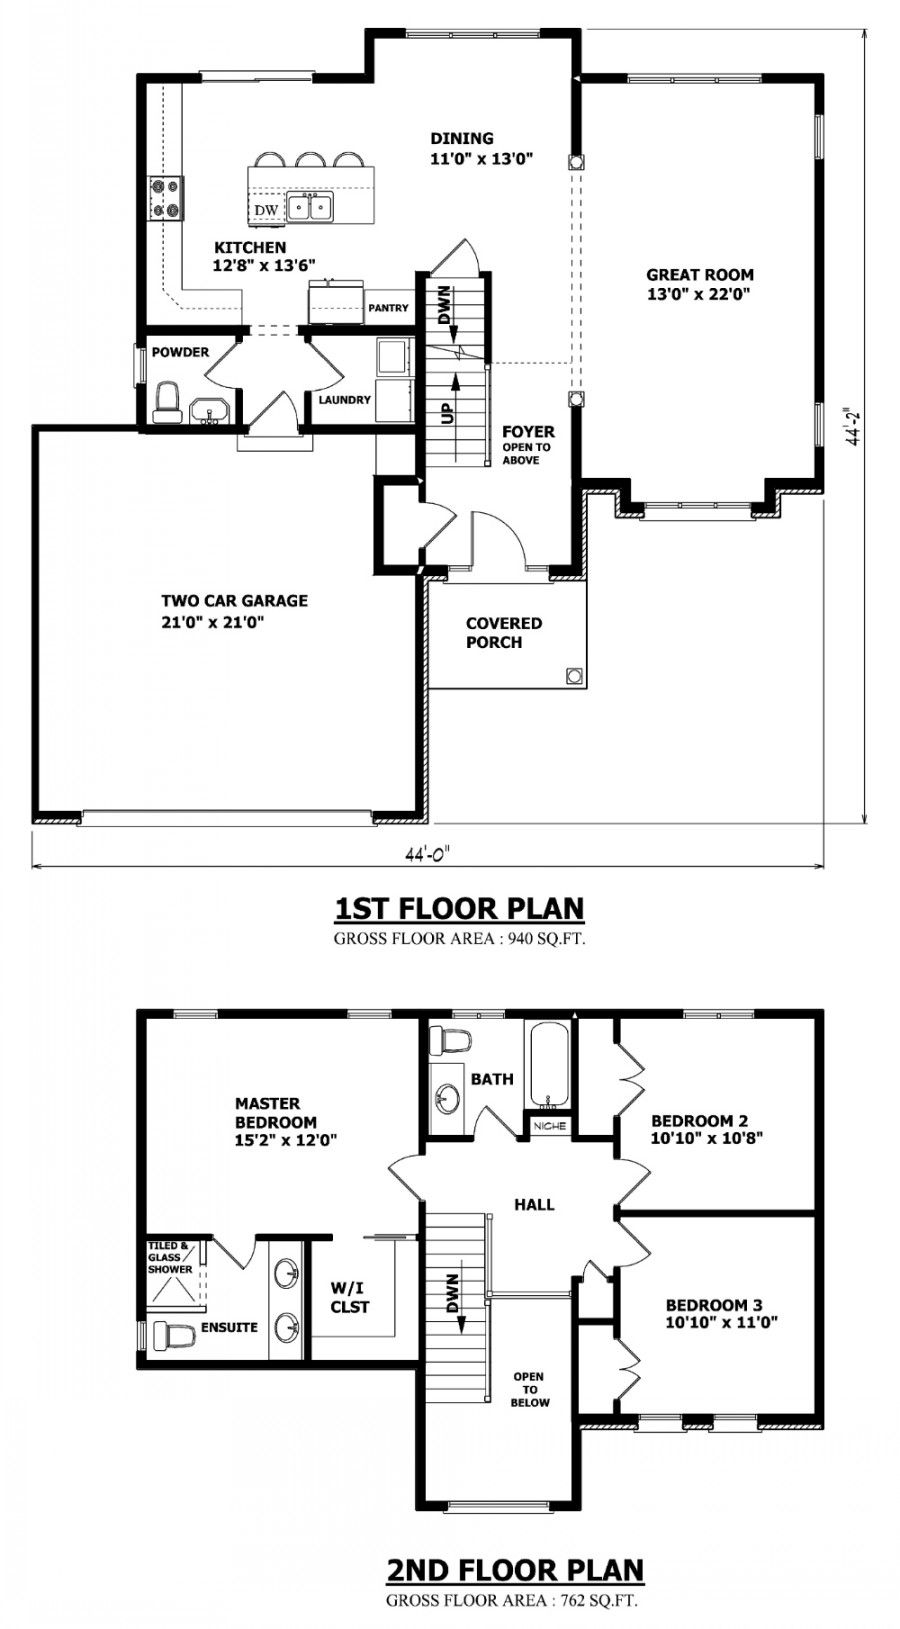 Home designs custom house plans stock house plans amp for Custom home design ideas